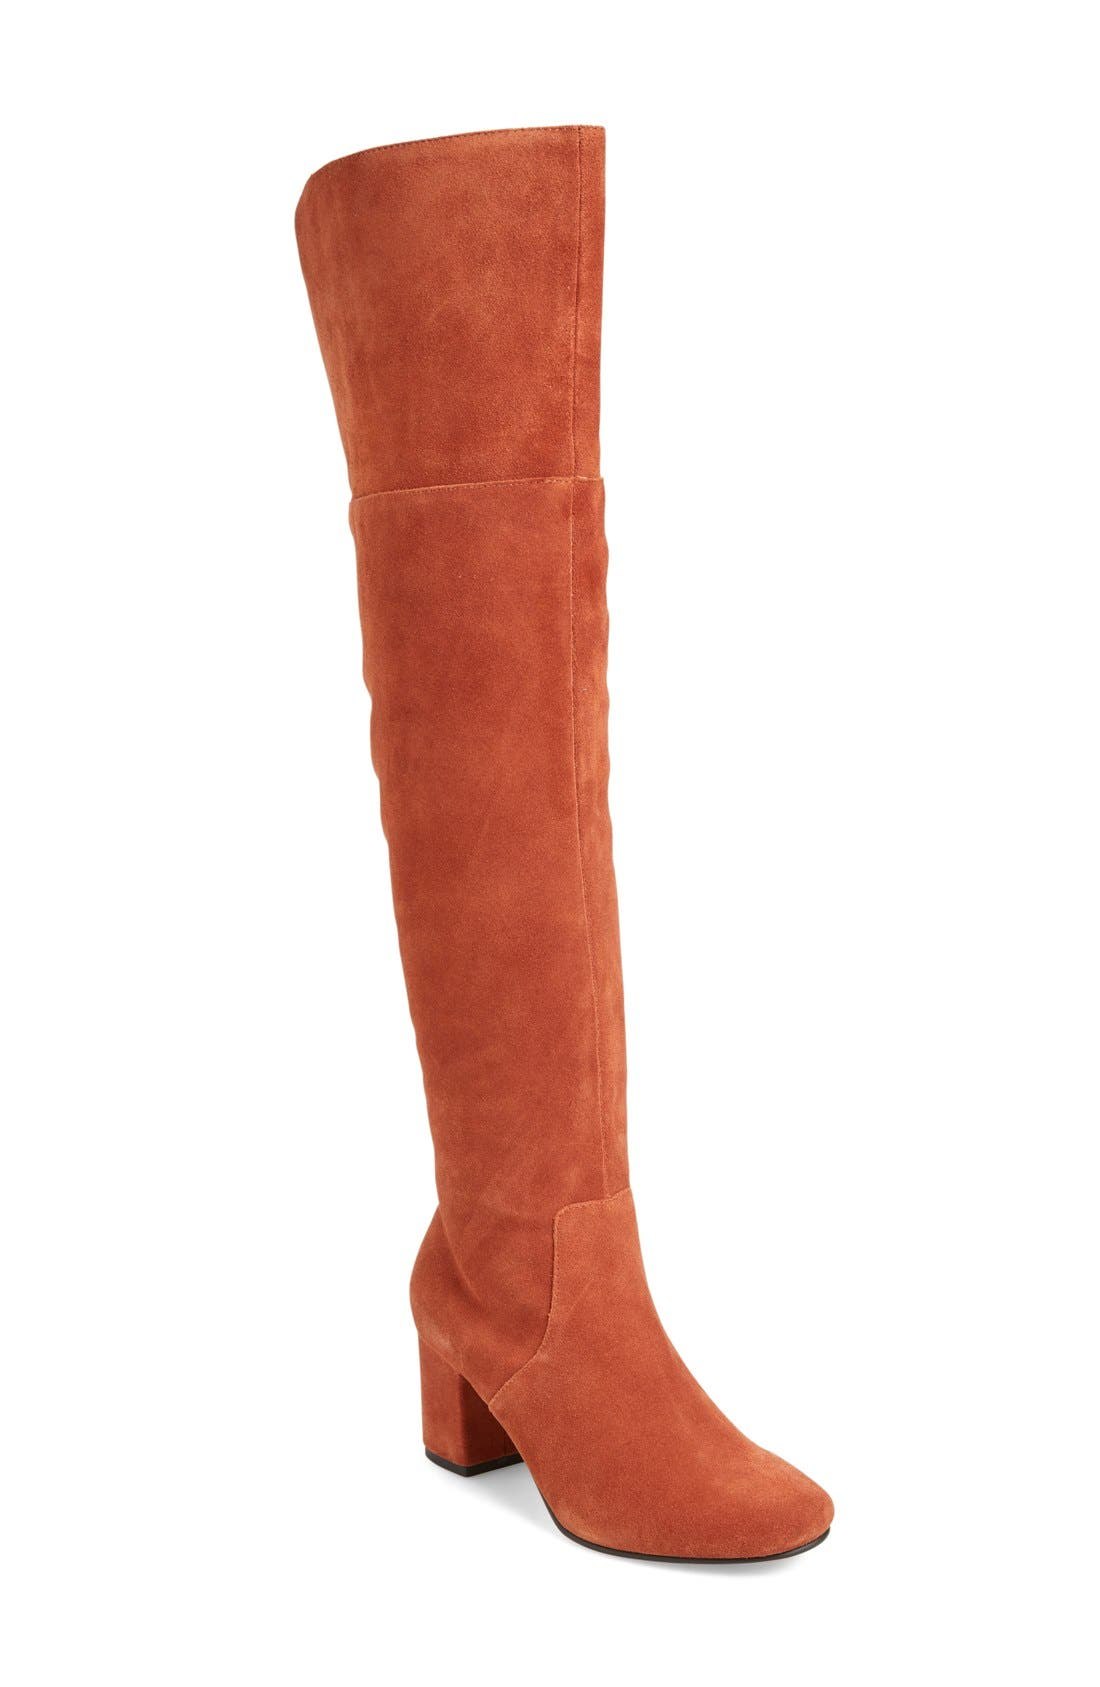 Main Image - Sole Society Leandra Over the Knee Boot (Women)